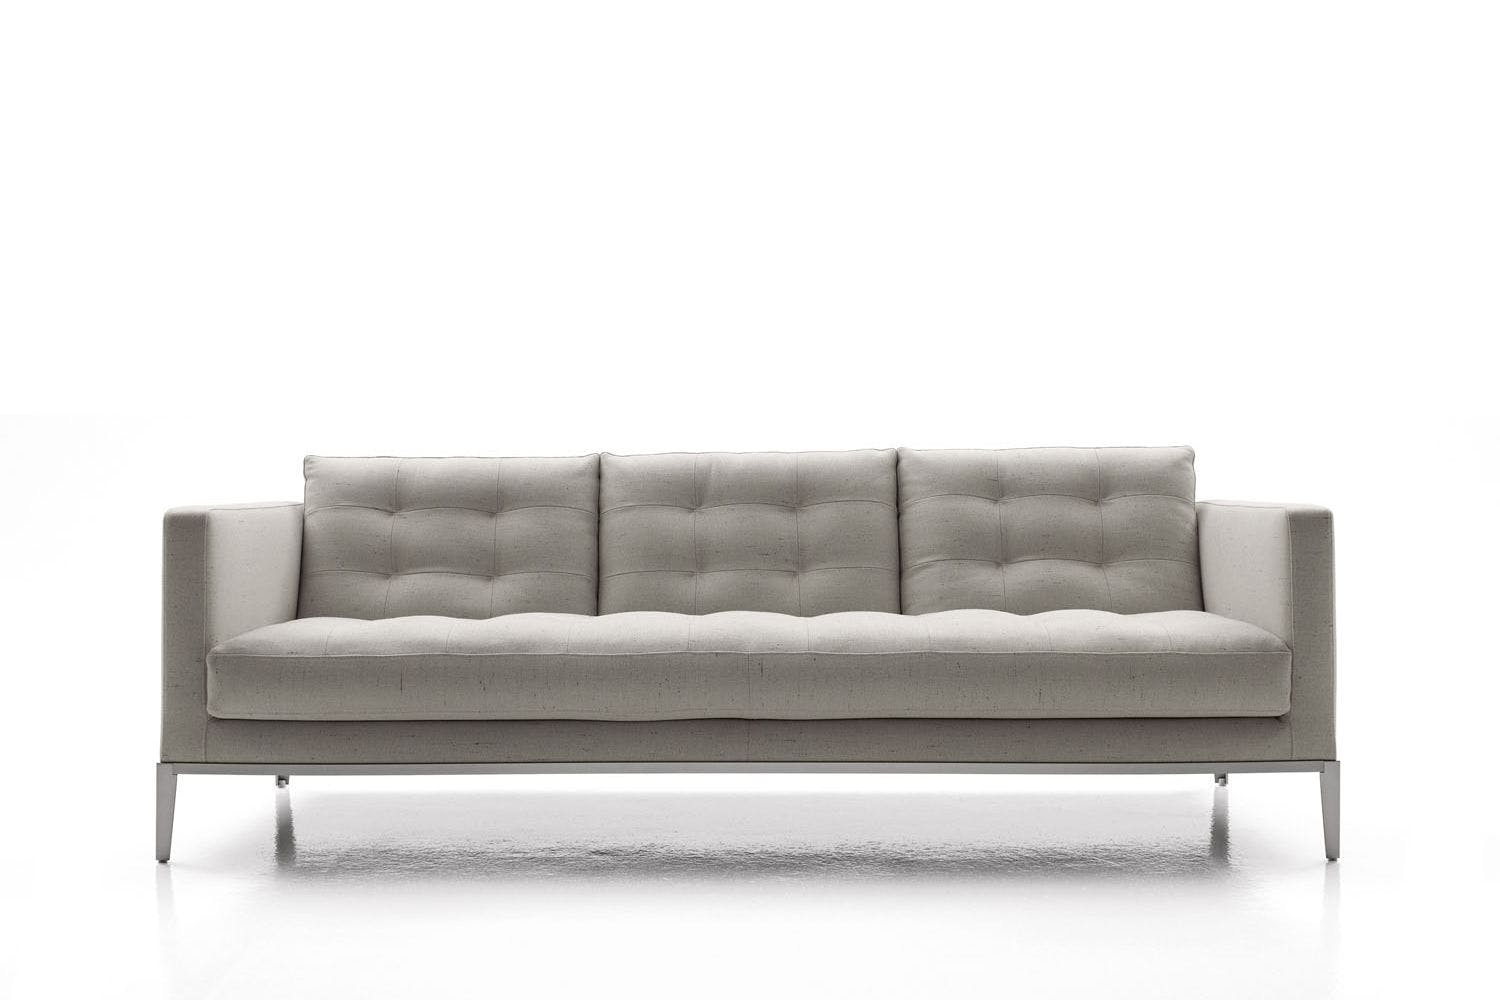 ac lounge sofa by antonio citterio for maxalto space furniture. Black Bedroom Furniture Sets. Home Design Ideas